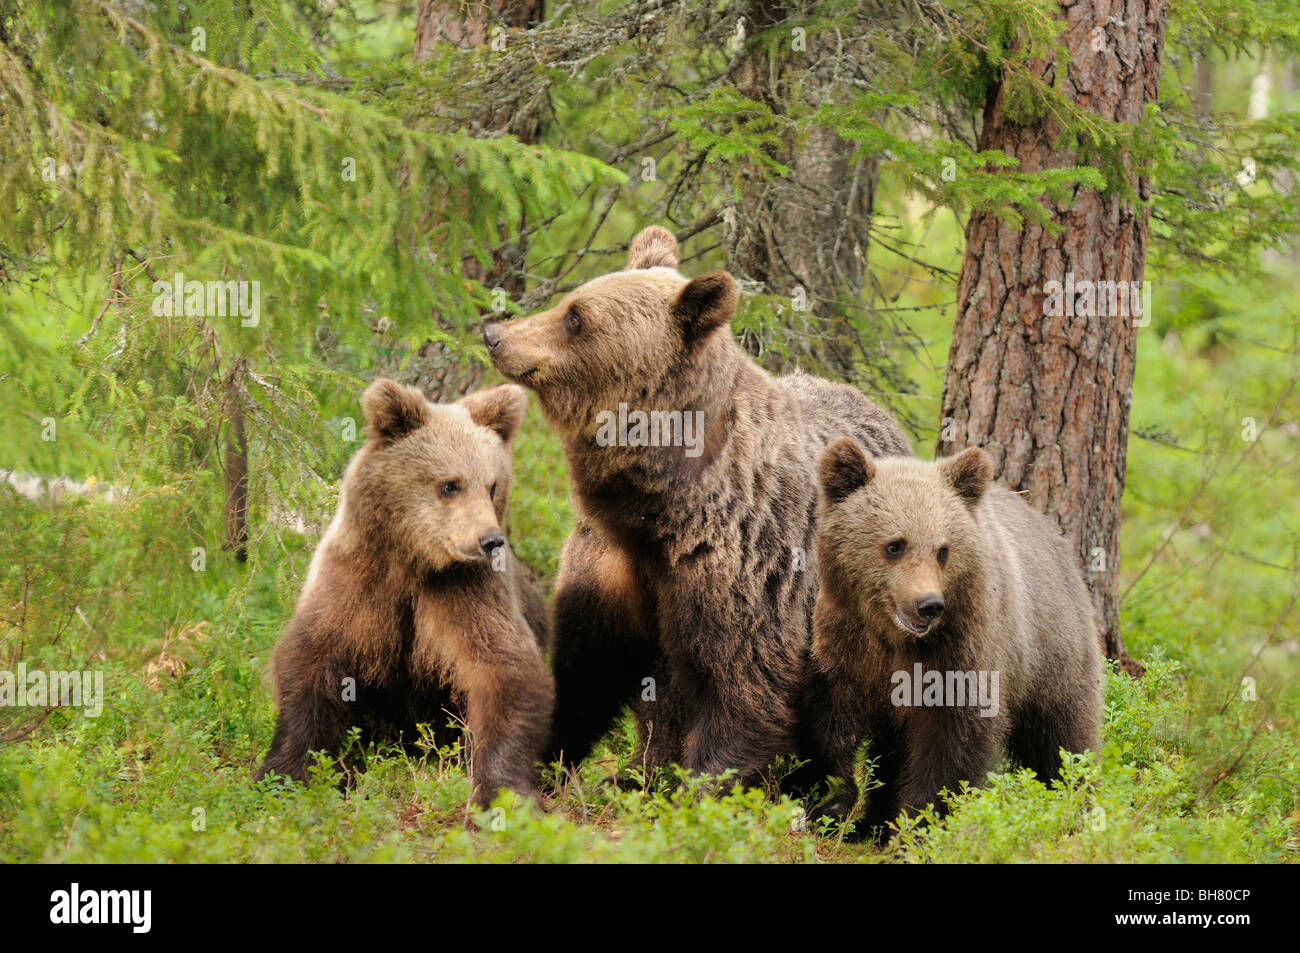 European Brown Bear Ursos arctos Mother and 1 year old cubs Photographed in Finland - Stock Image